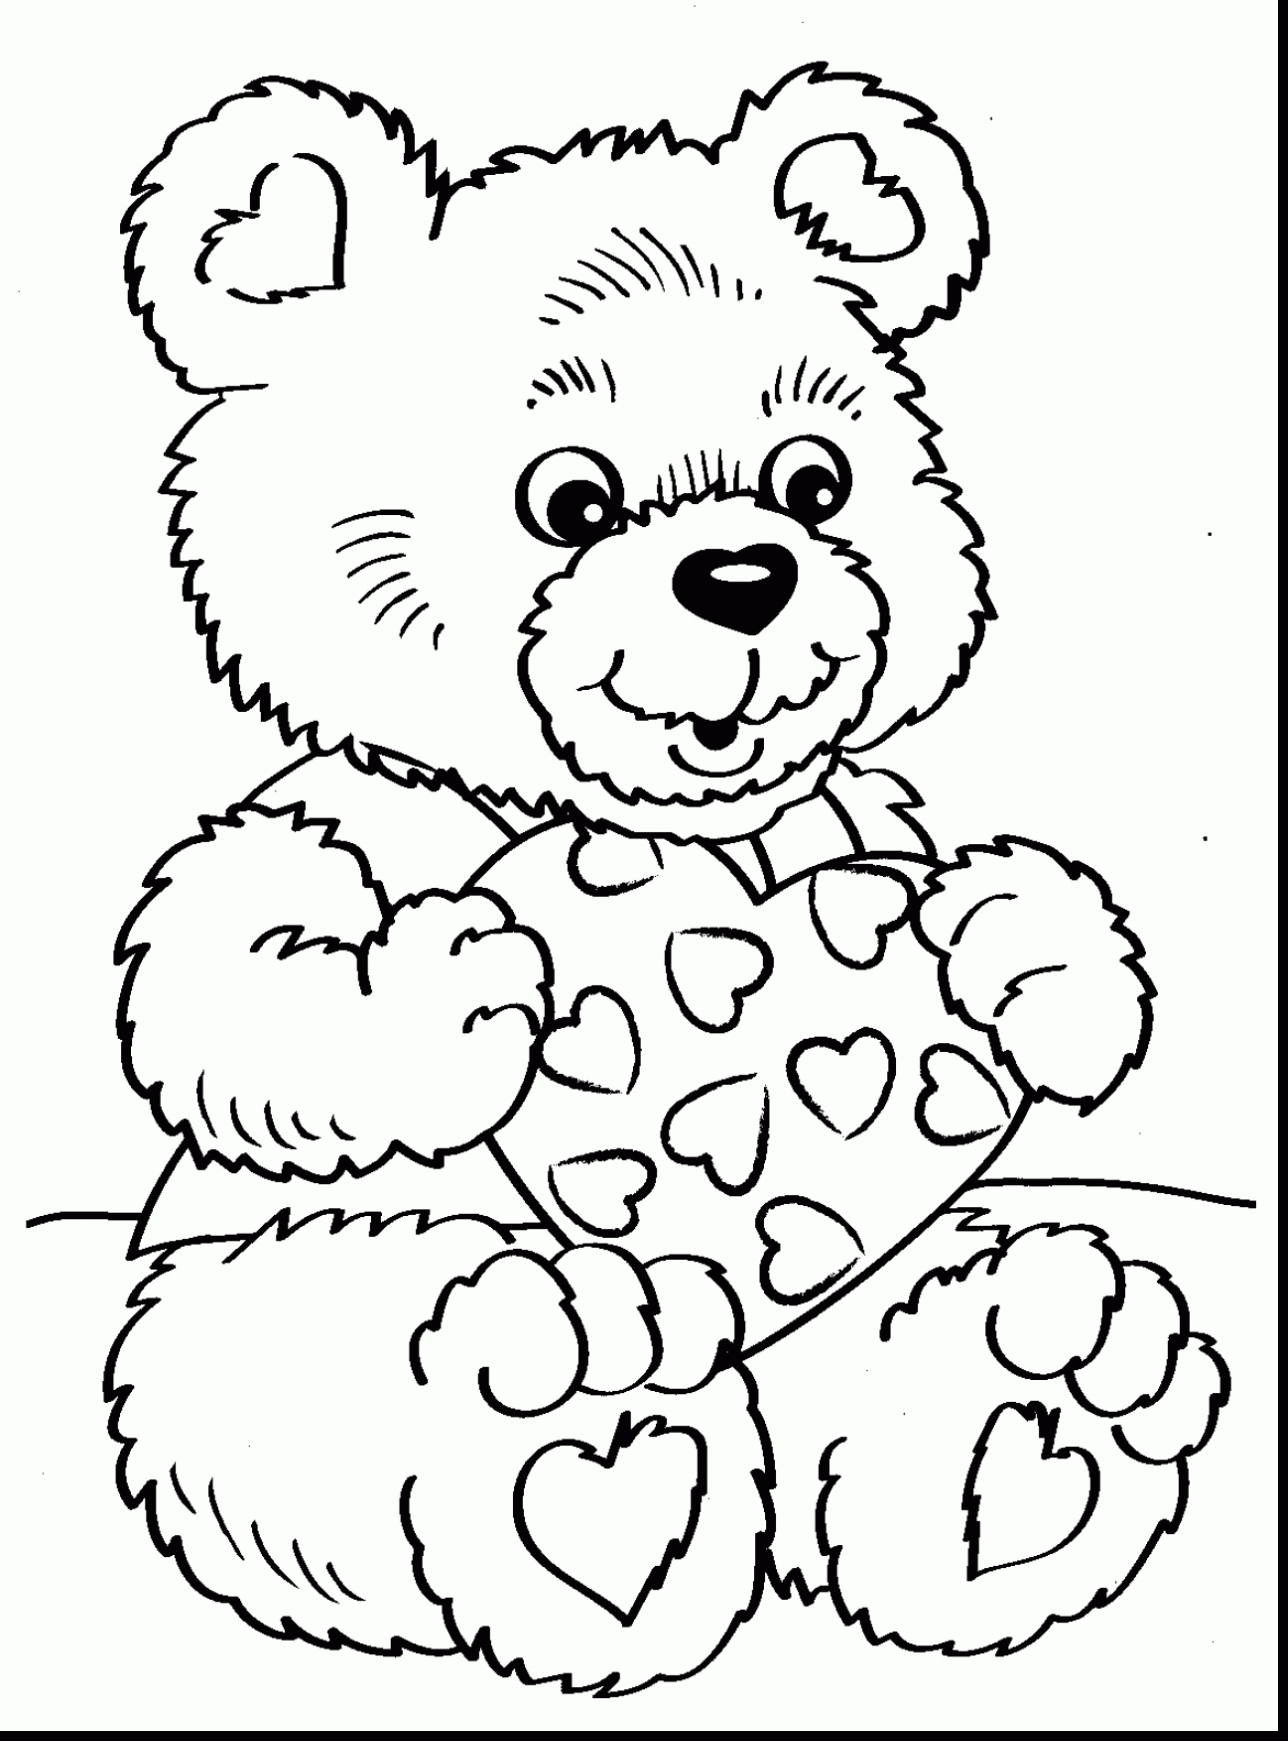 Valentines Day Coloring Pages Printable Download Free Coloring Books Printable Of Valentine Day Printable Coloring Pages Free Coloring Library Download